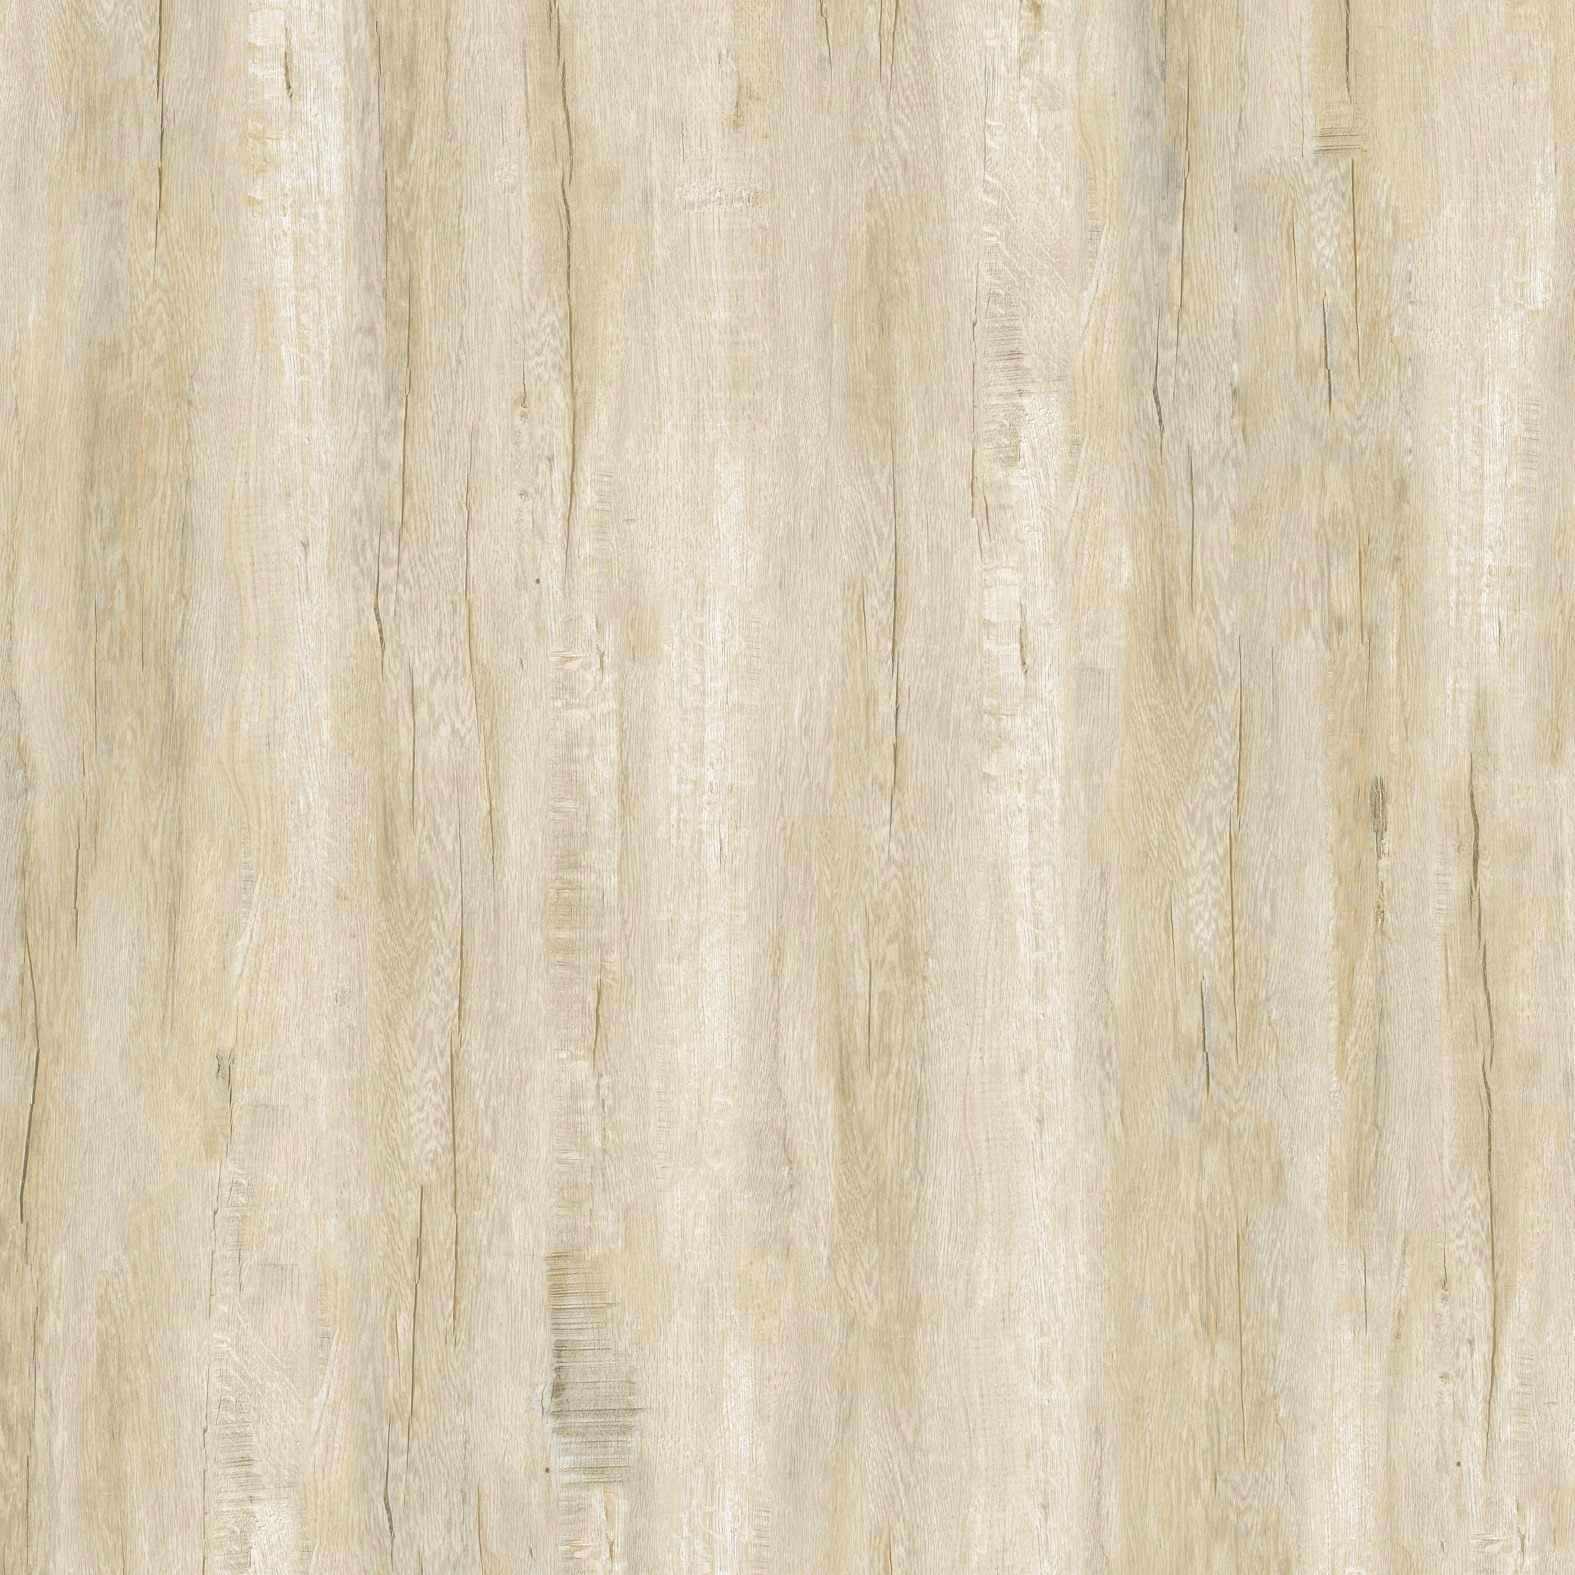 Kitchen wall tiles- Full polished marble tiles Wooden tiles  VPM6144H VPM6125H VPM6123H VPM6124H VPM6173H VPM6141H VPM6181H-60x6